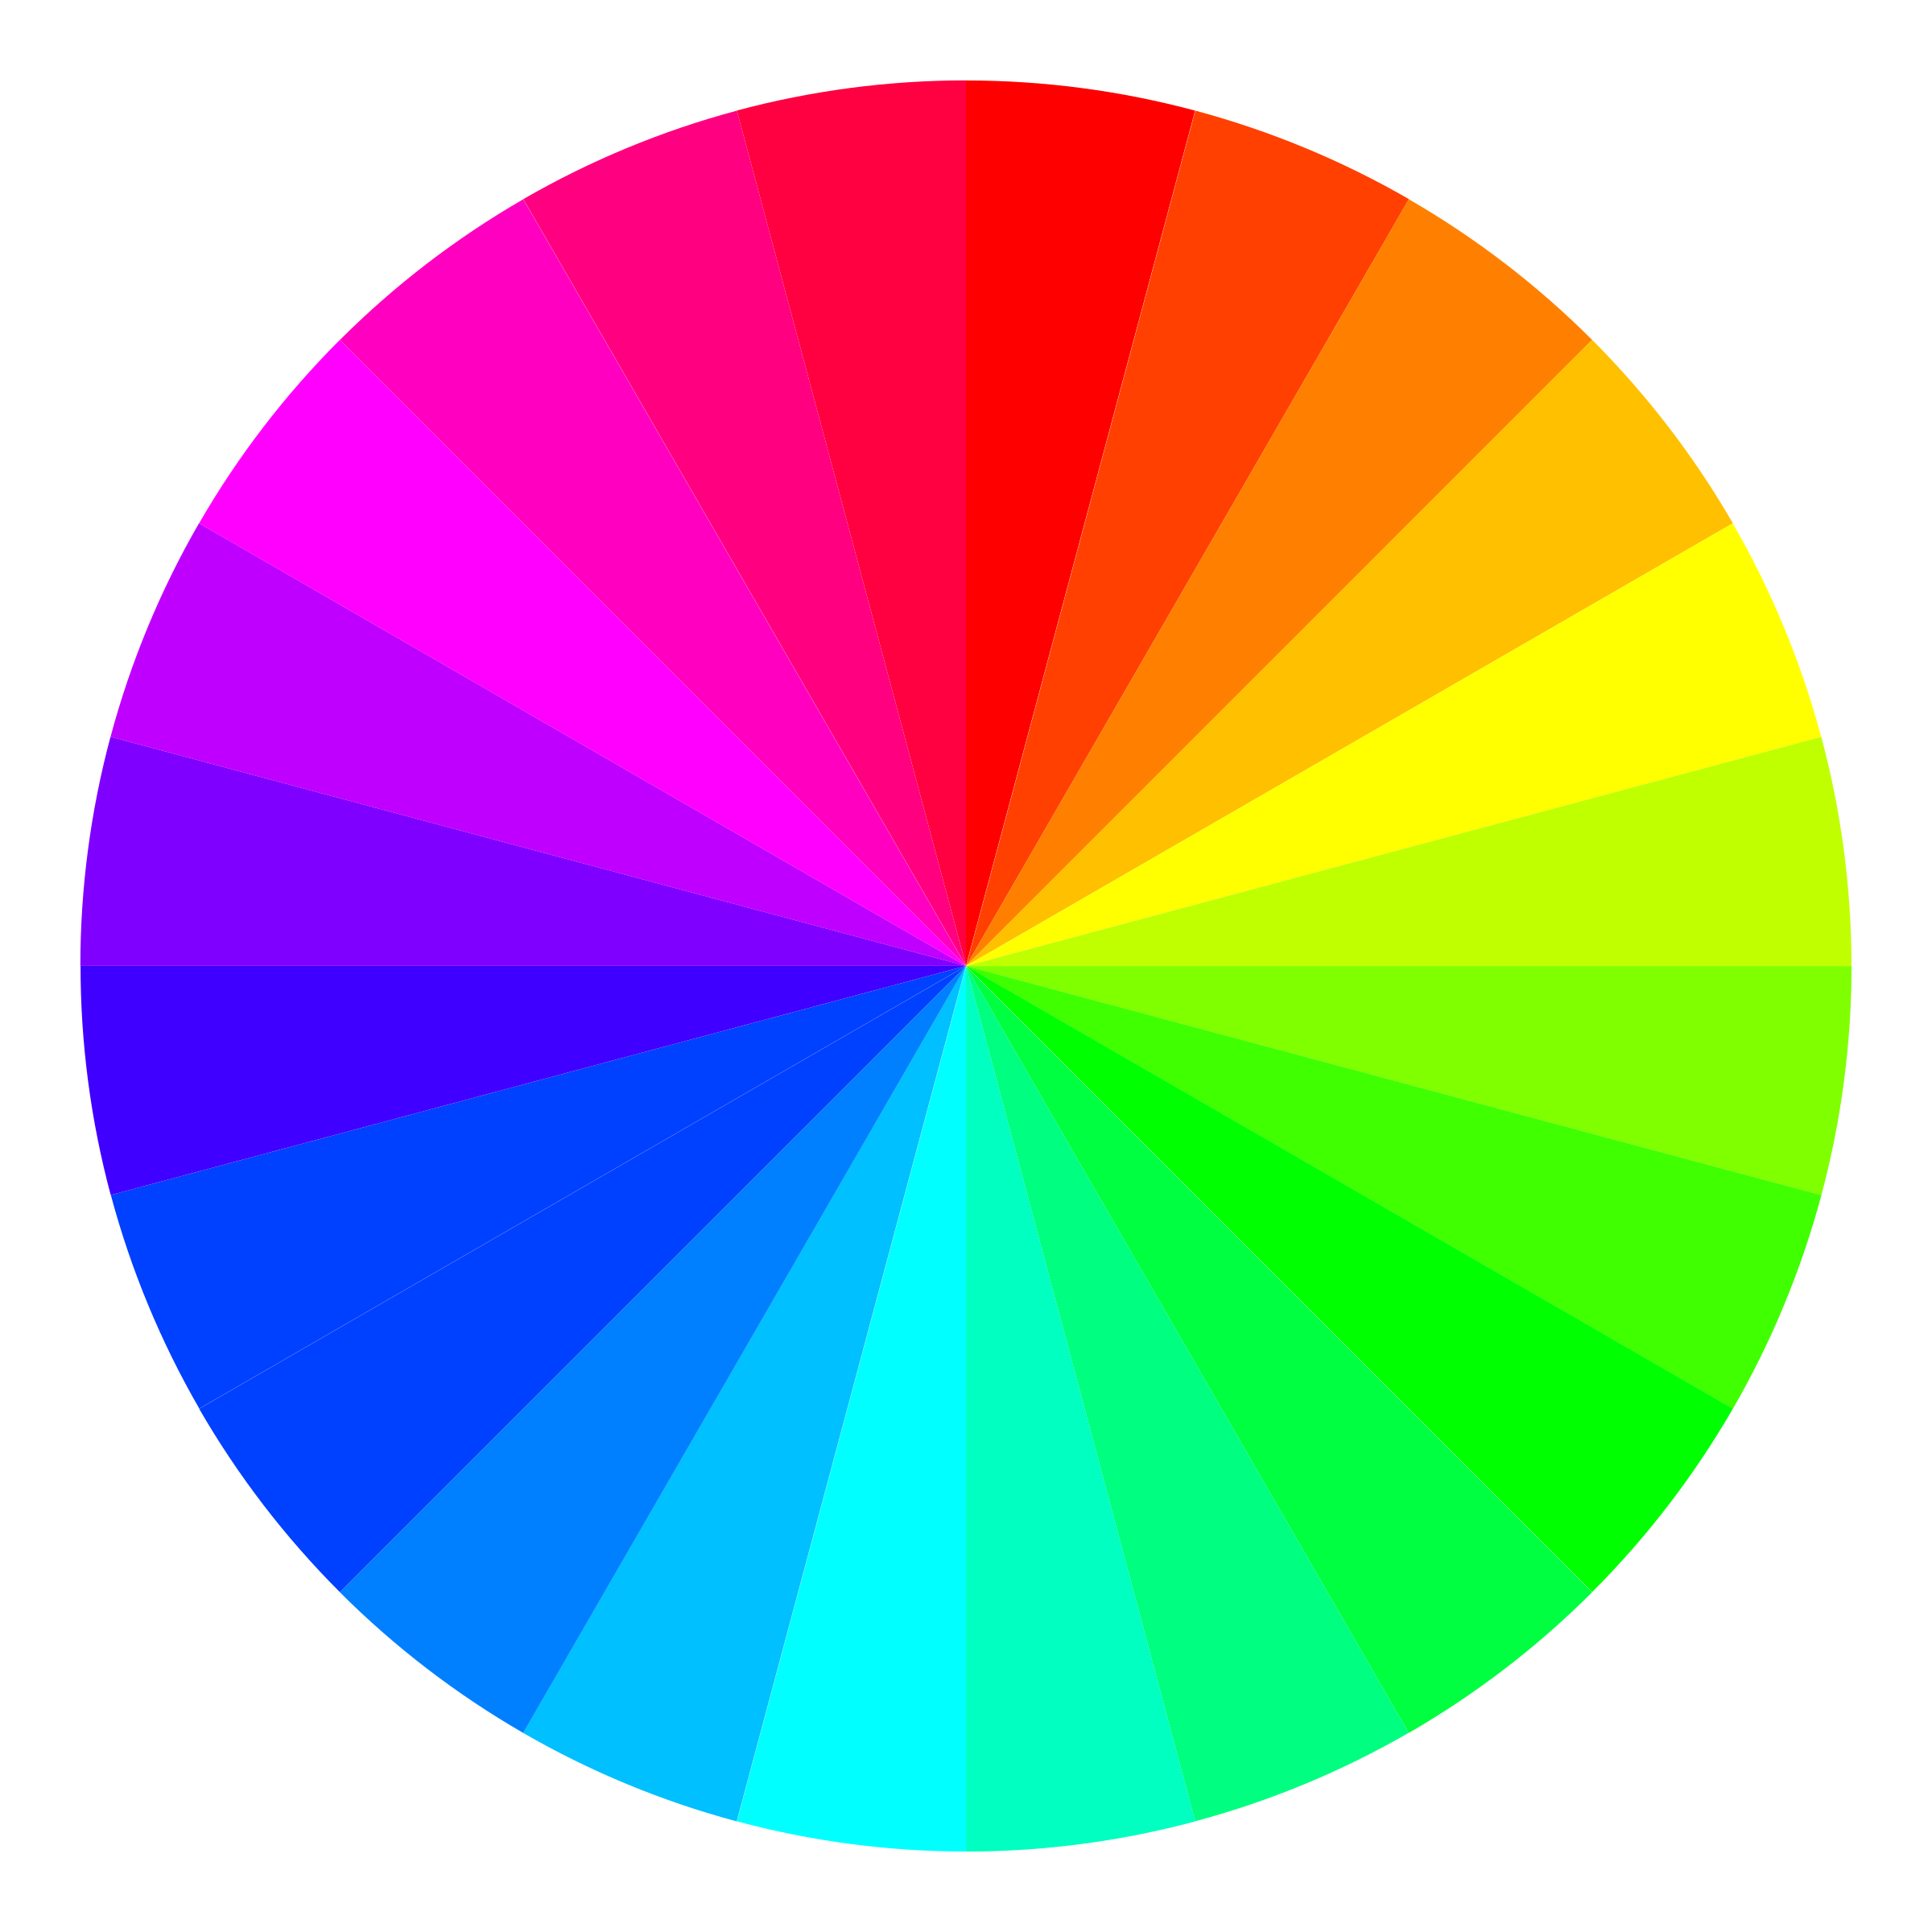 24 color beach ball by 10binary